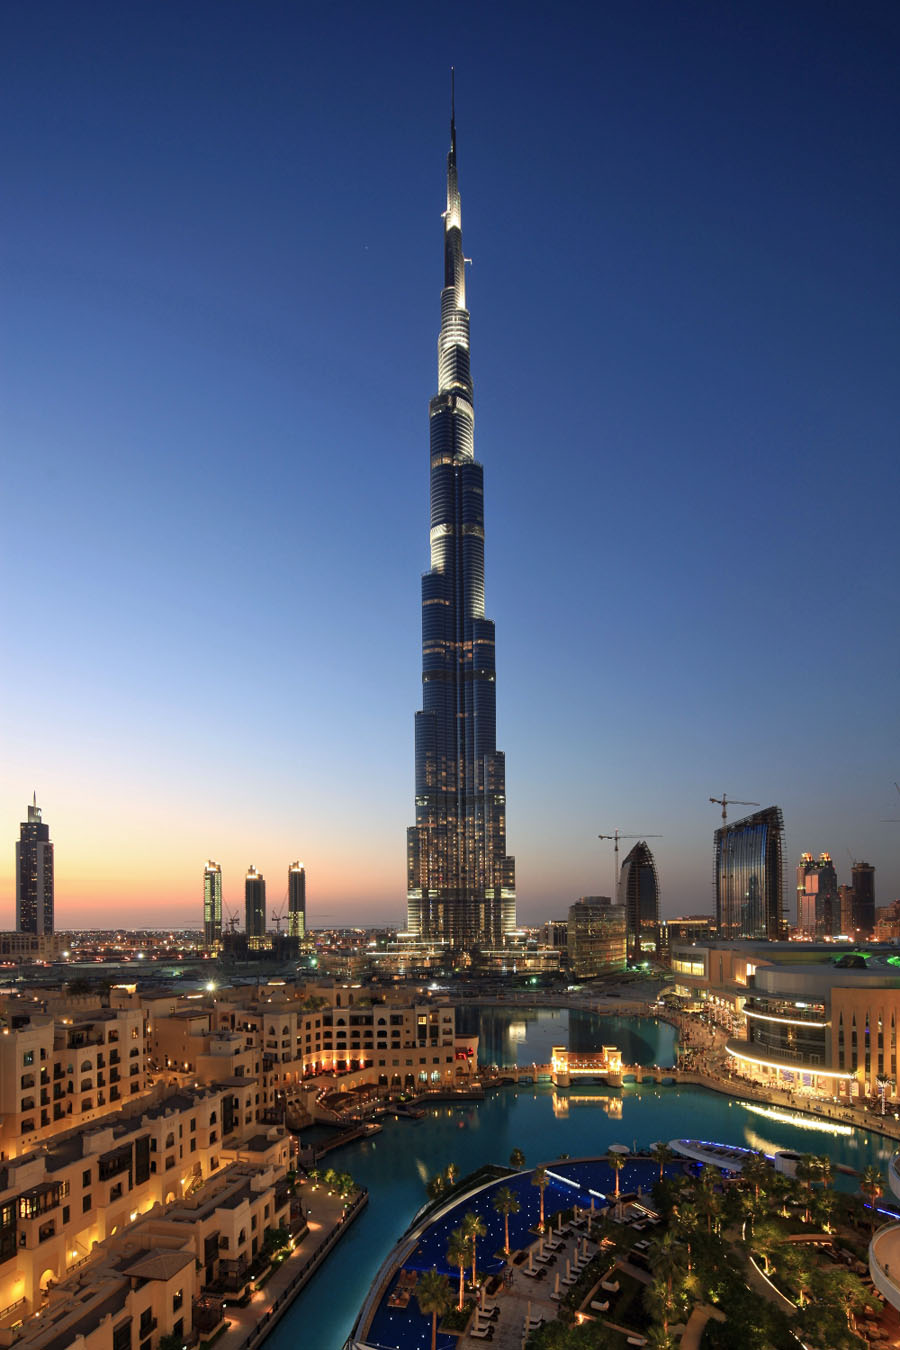 Burj khalifa dubai tallest building in the world 16 for Al burj dubai